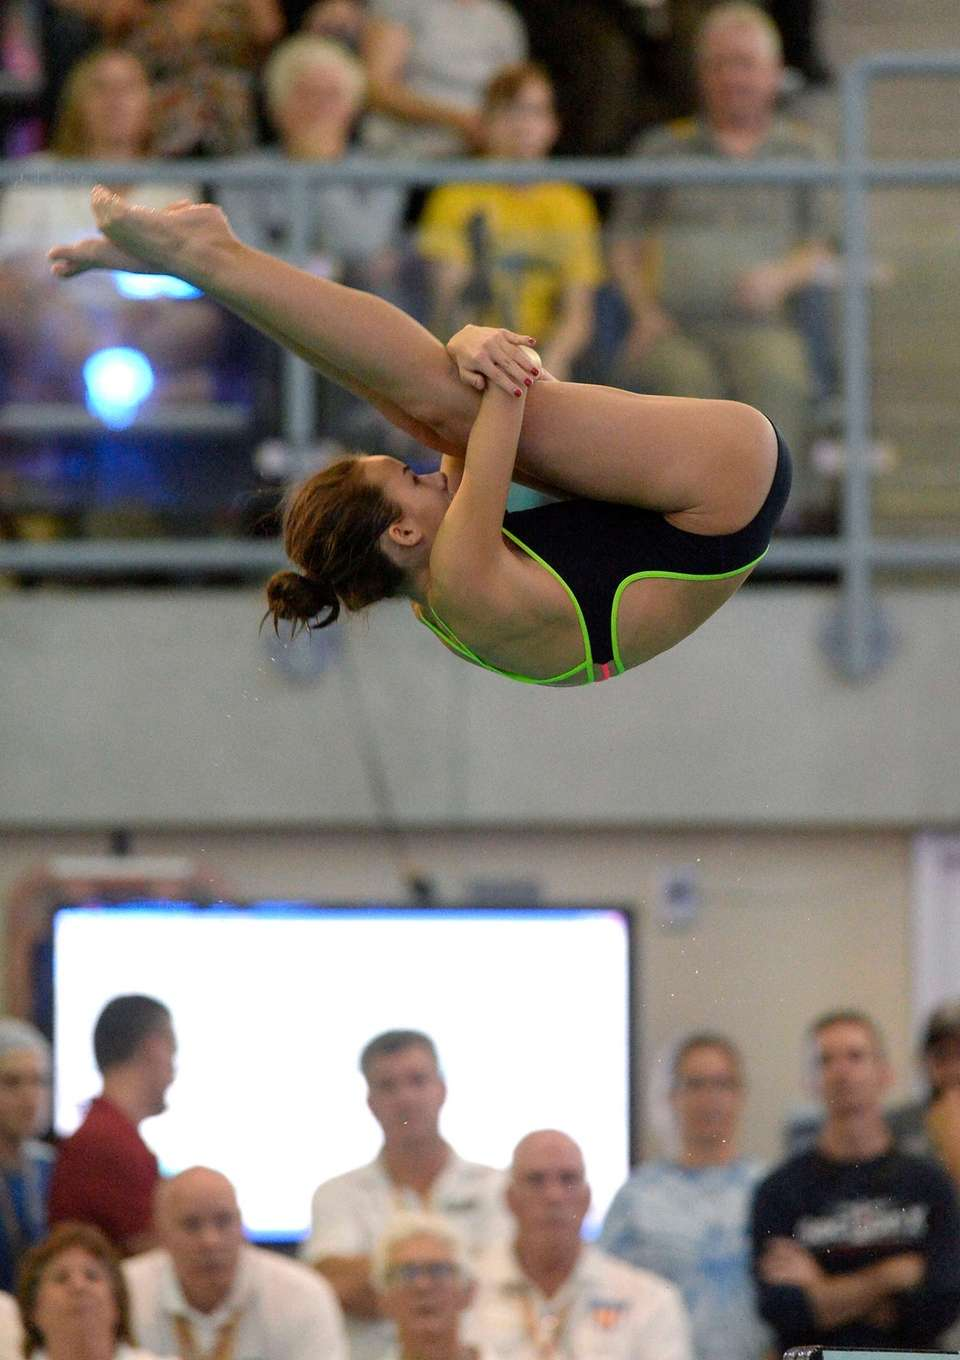 Cold Spring-Harbor's Camille Roberts performs a dive during